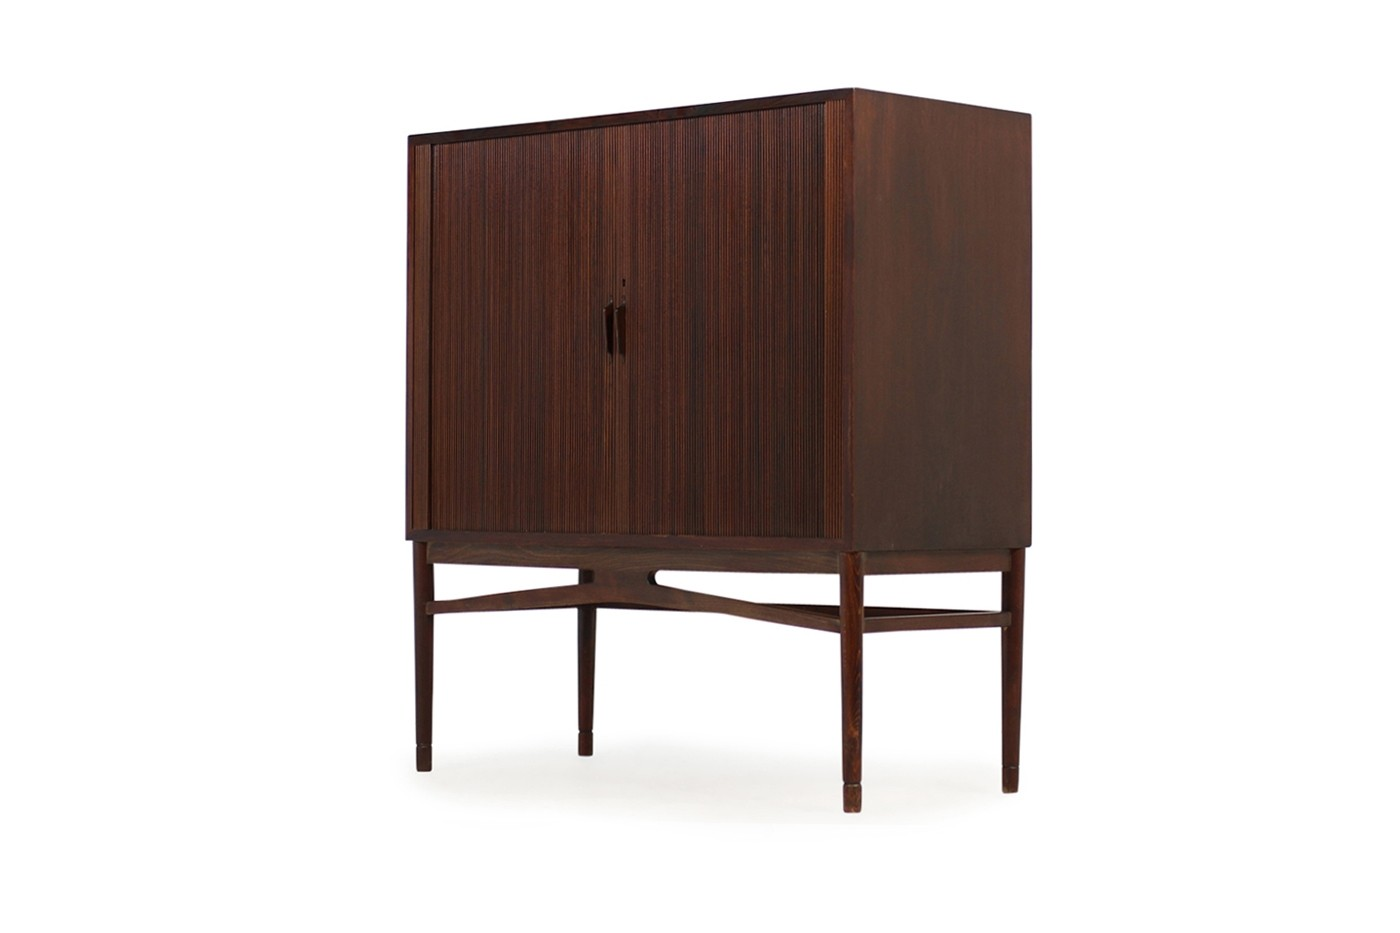 woodman mbel excellent bureau secretaire with woodman mbel awesome excellent buffet design. Black Bedroom Furniture Sets. Home Design Ideas